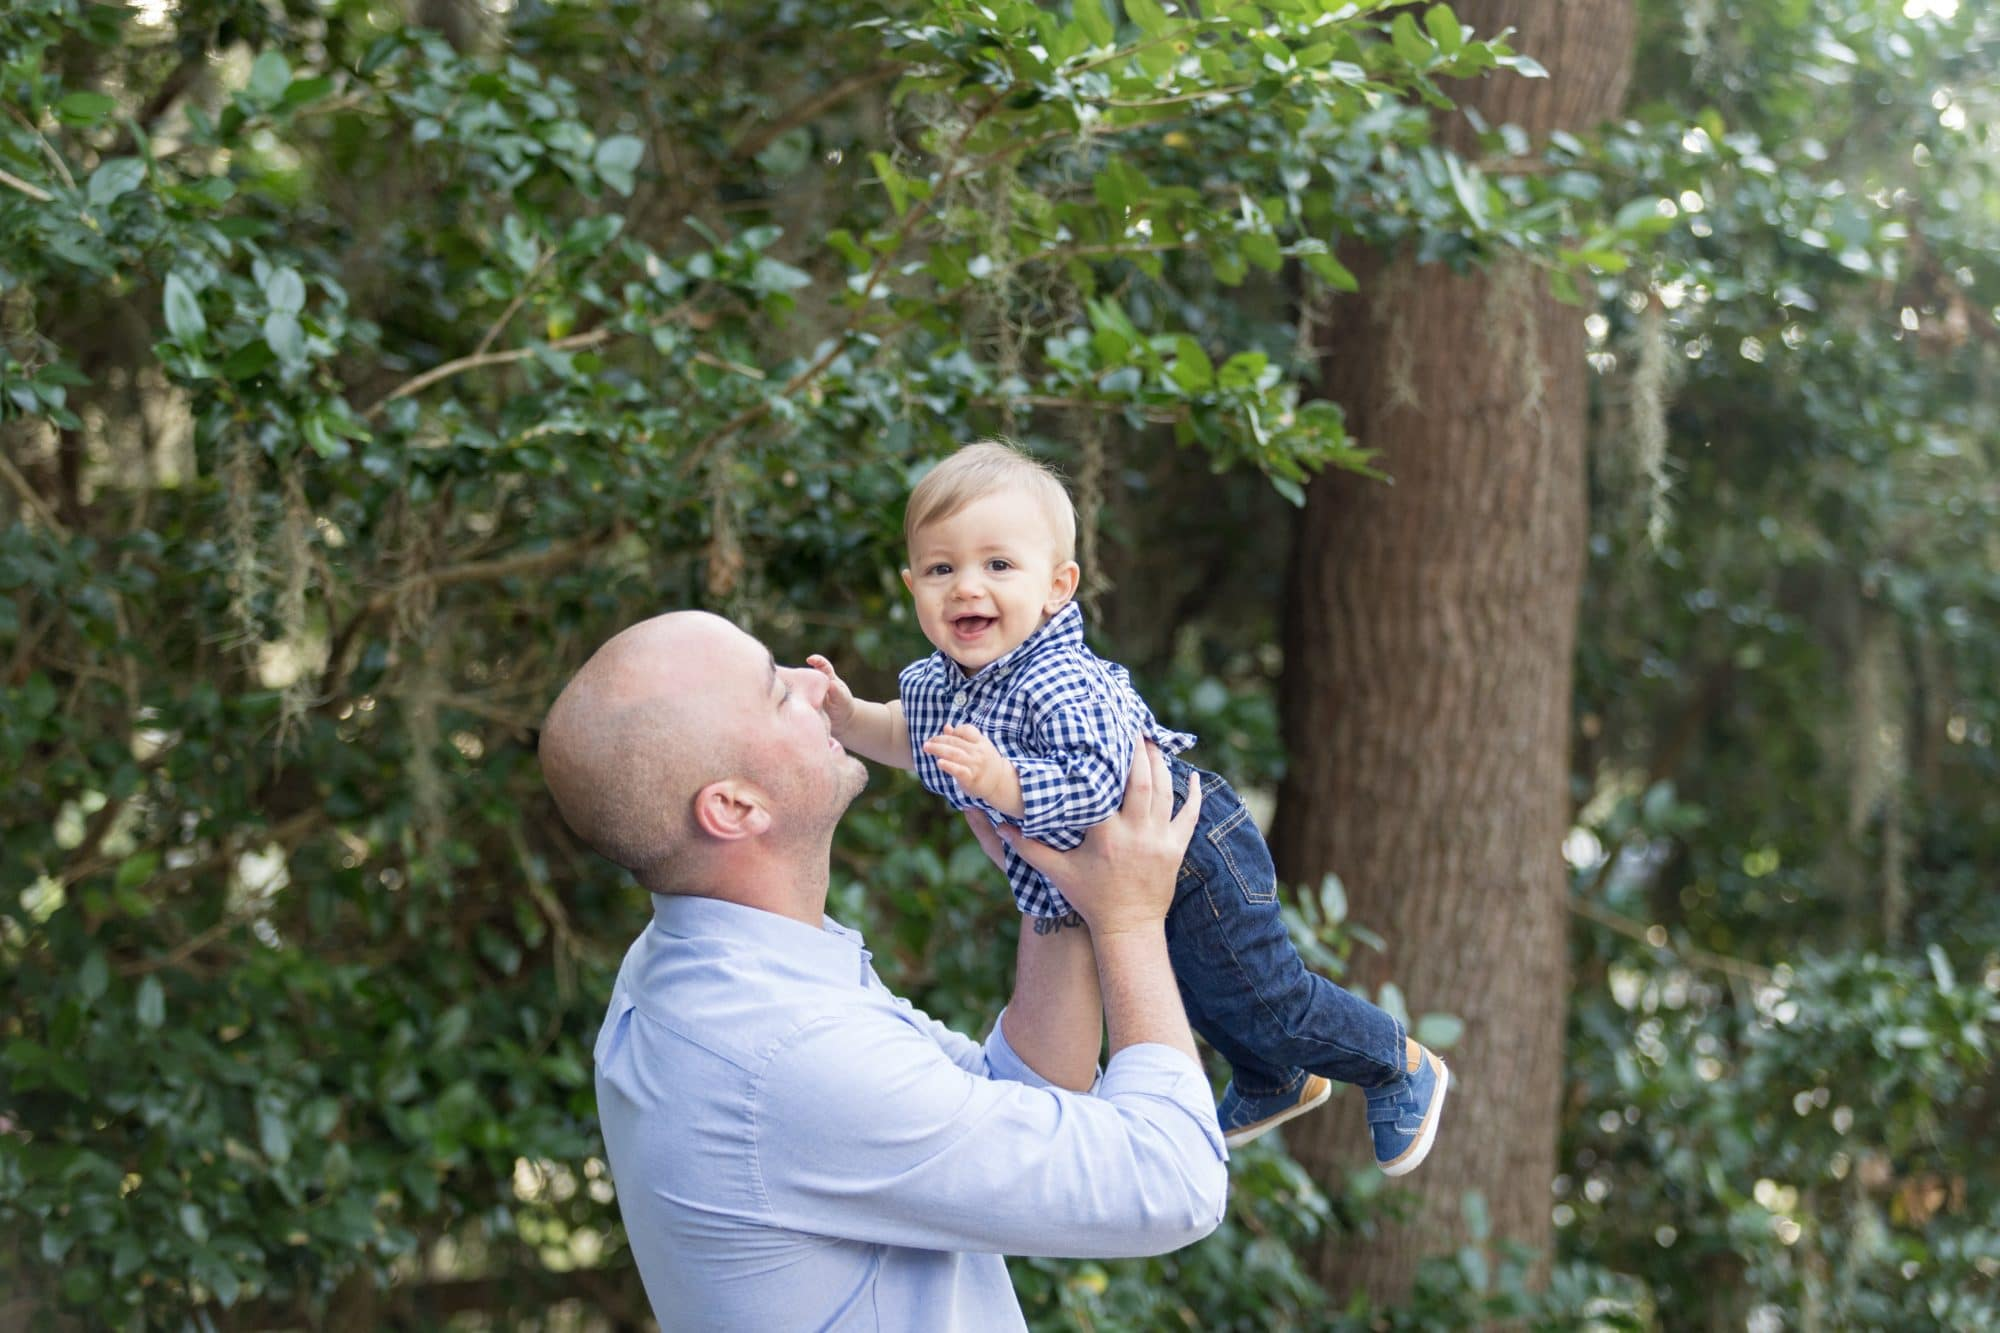 Family portrait photographer captures photograph of dad and son smiling